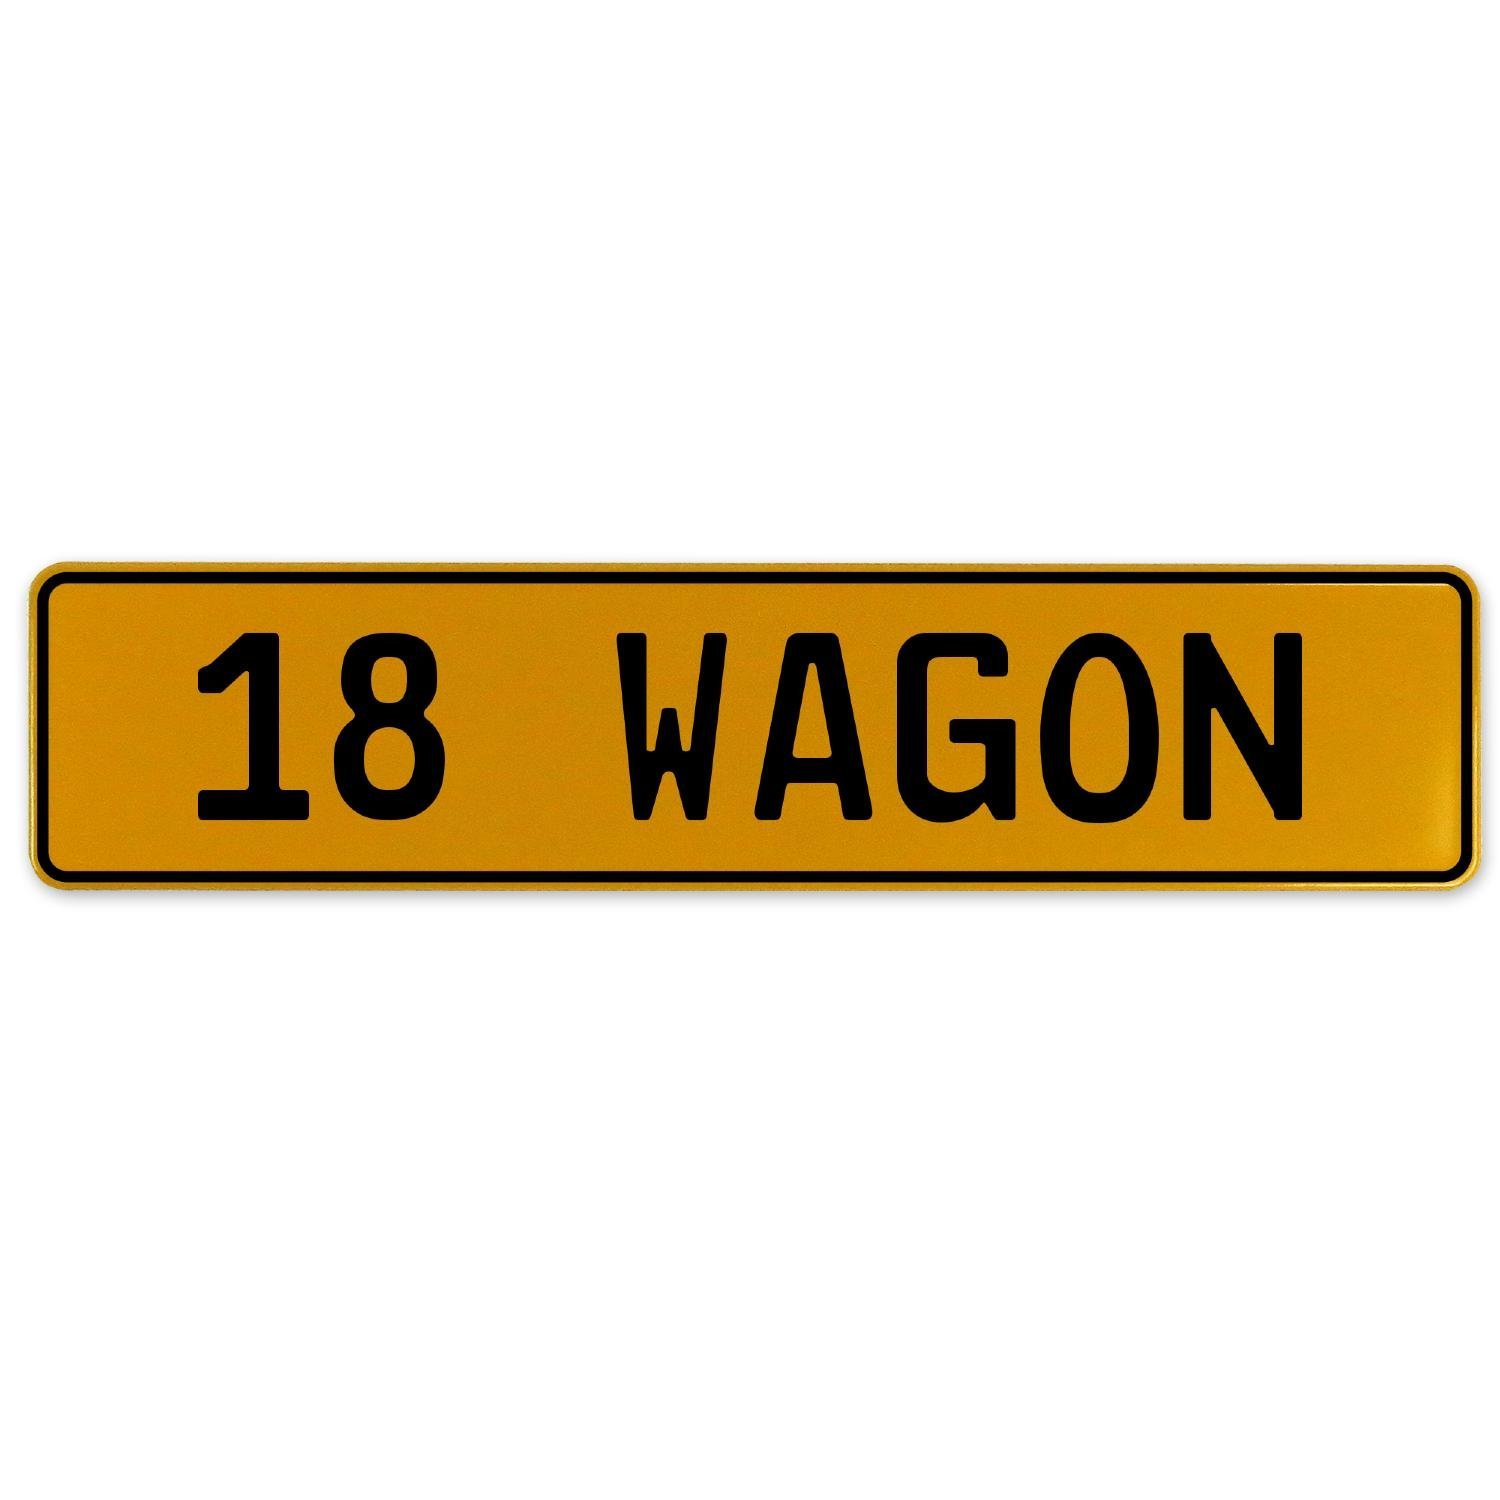 Vintage Parts 563229 18 Wagon Yellow Stamped Aluminum European Plate